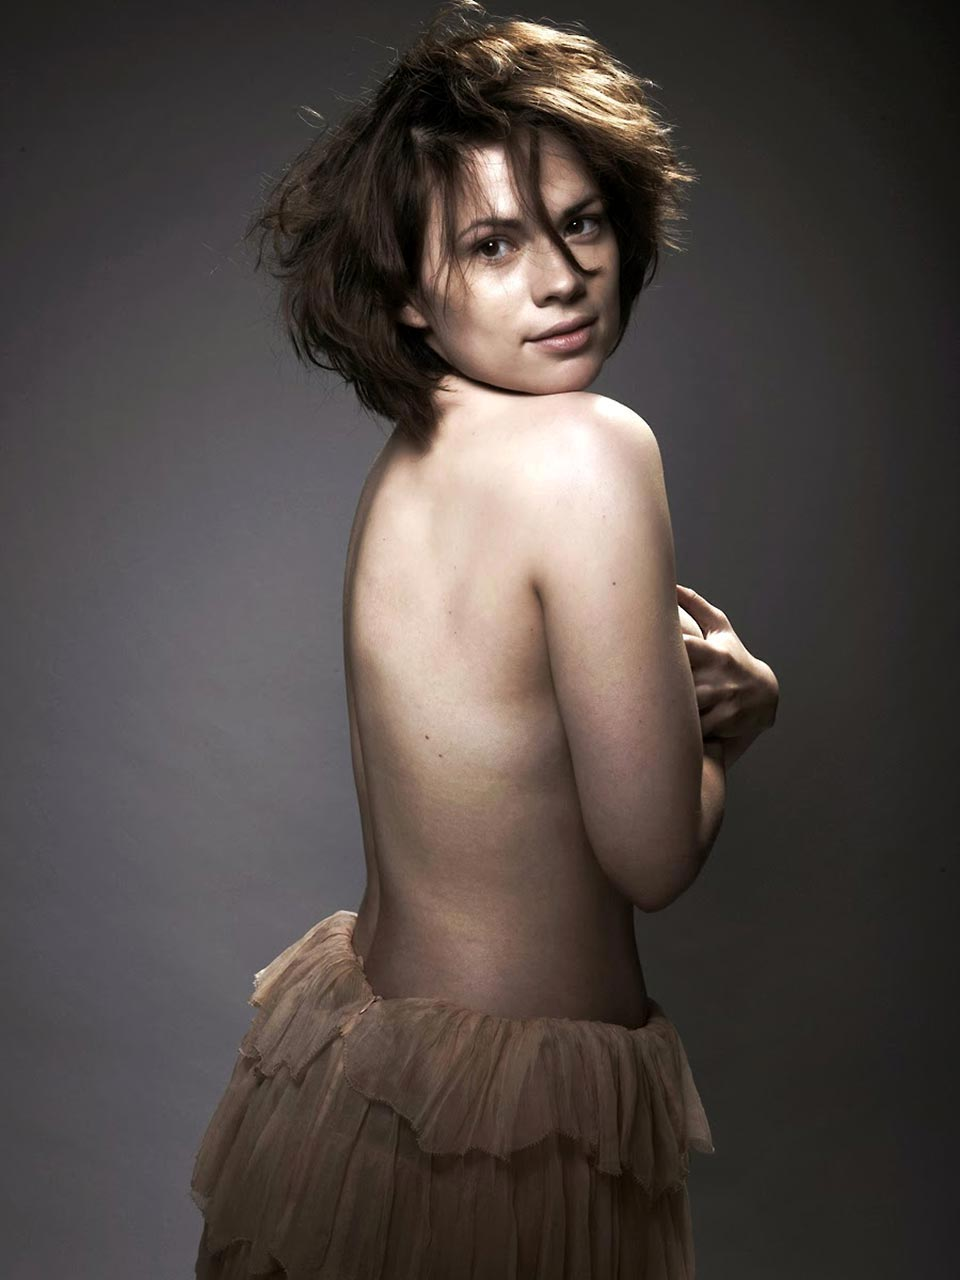 Hayley atwell nude scenes